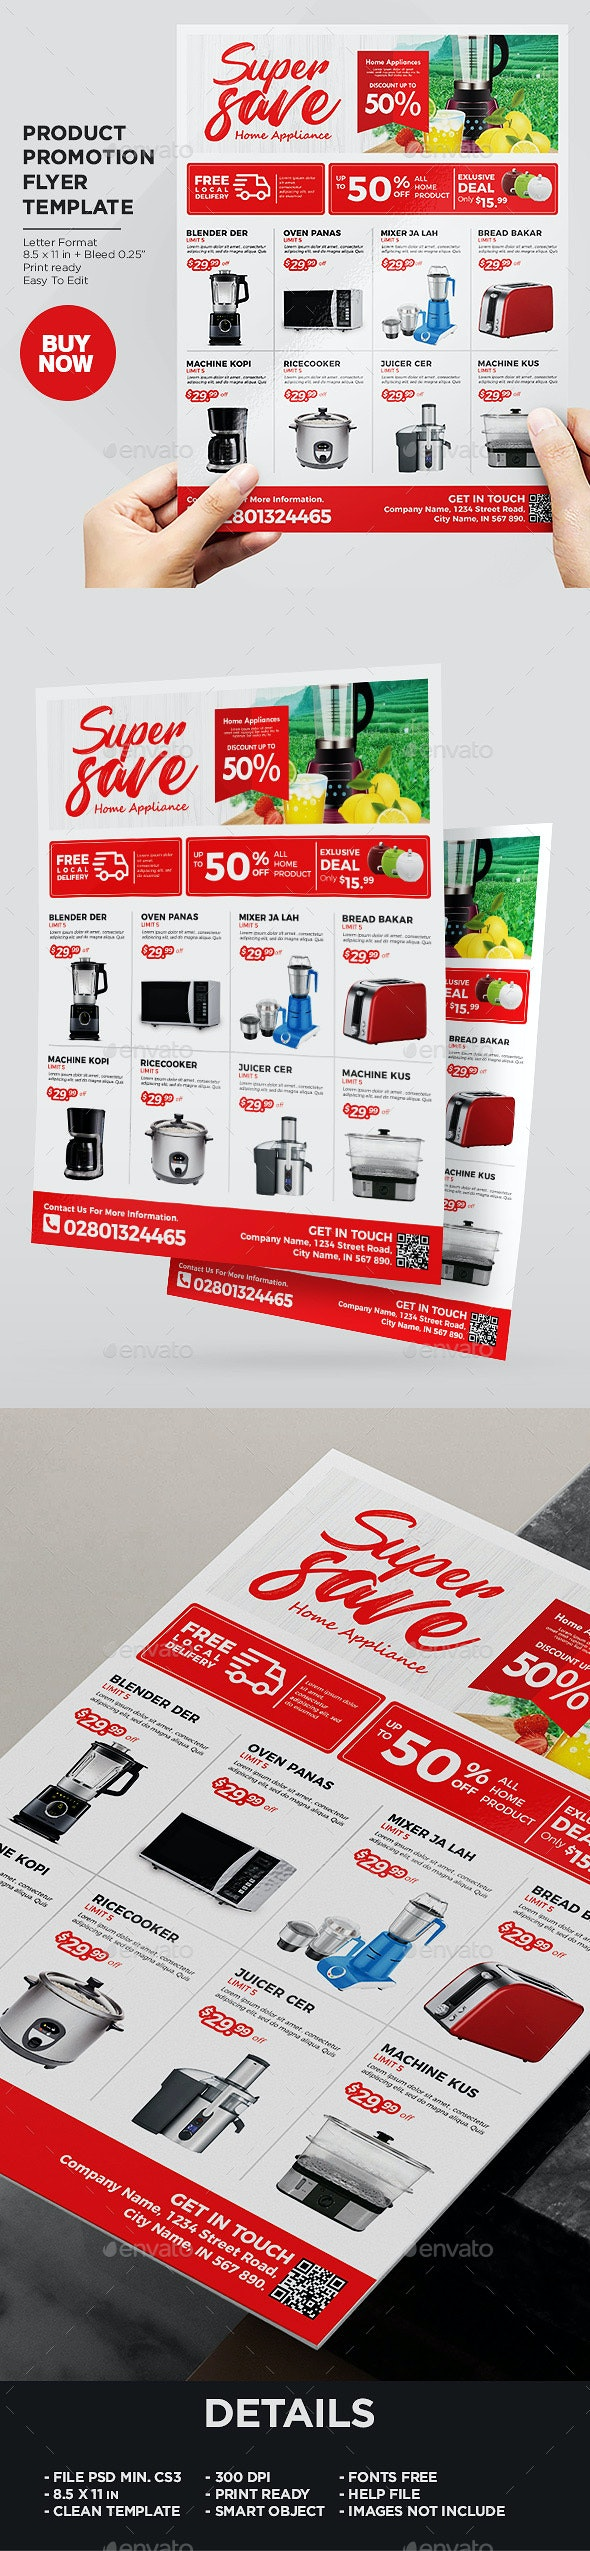 Home Appliances Product Promotion Flyer - Corporate Flyers